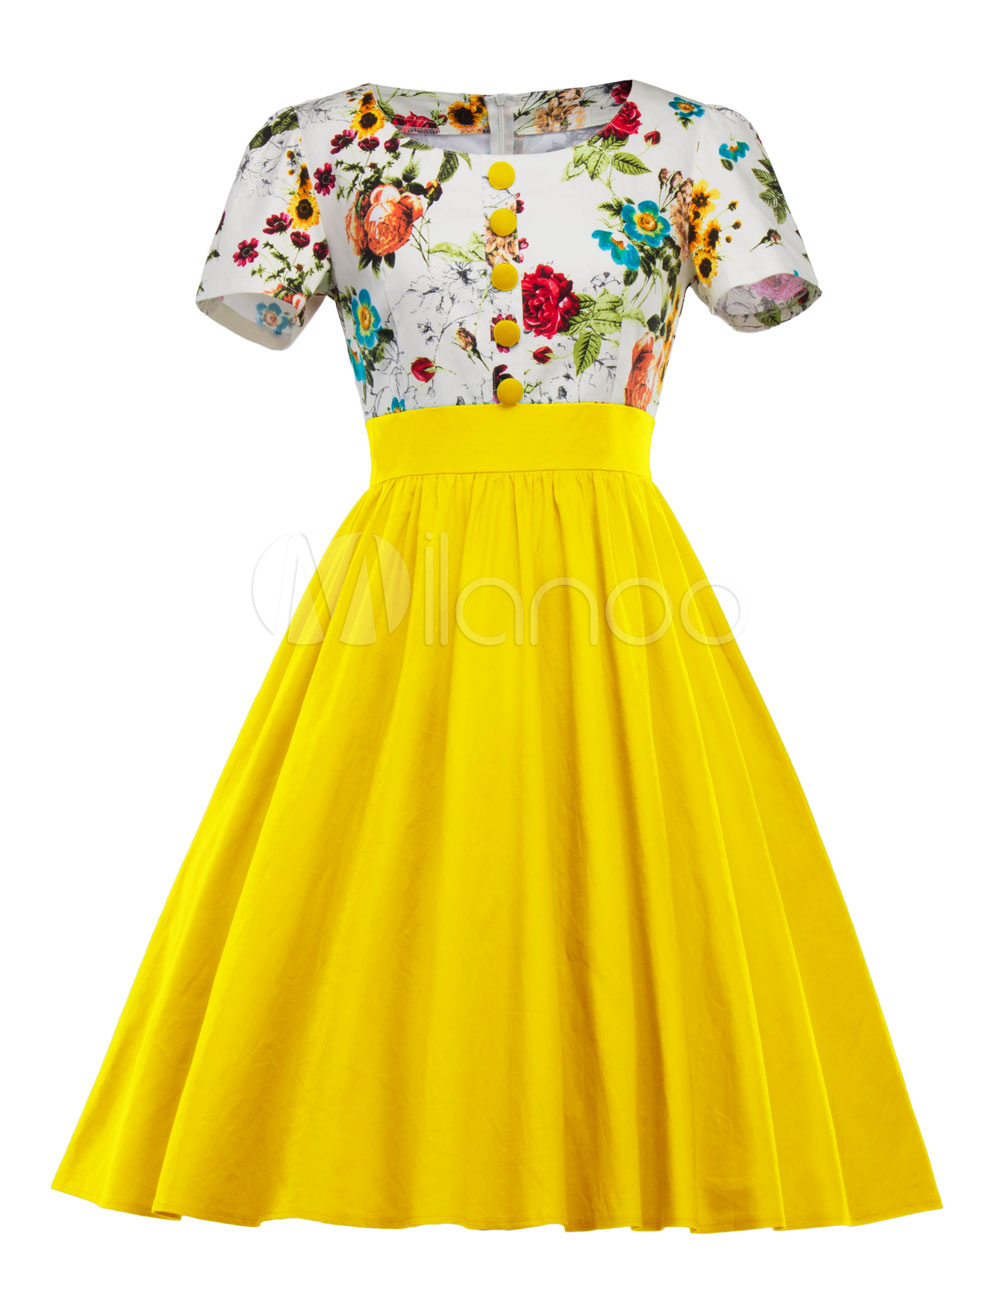 Yellow Vintage Dress Floral Print Round Neck Short Sleeve Buttons Draped Pleated A Line Dress